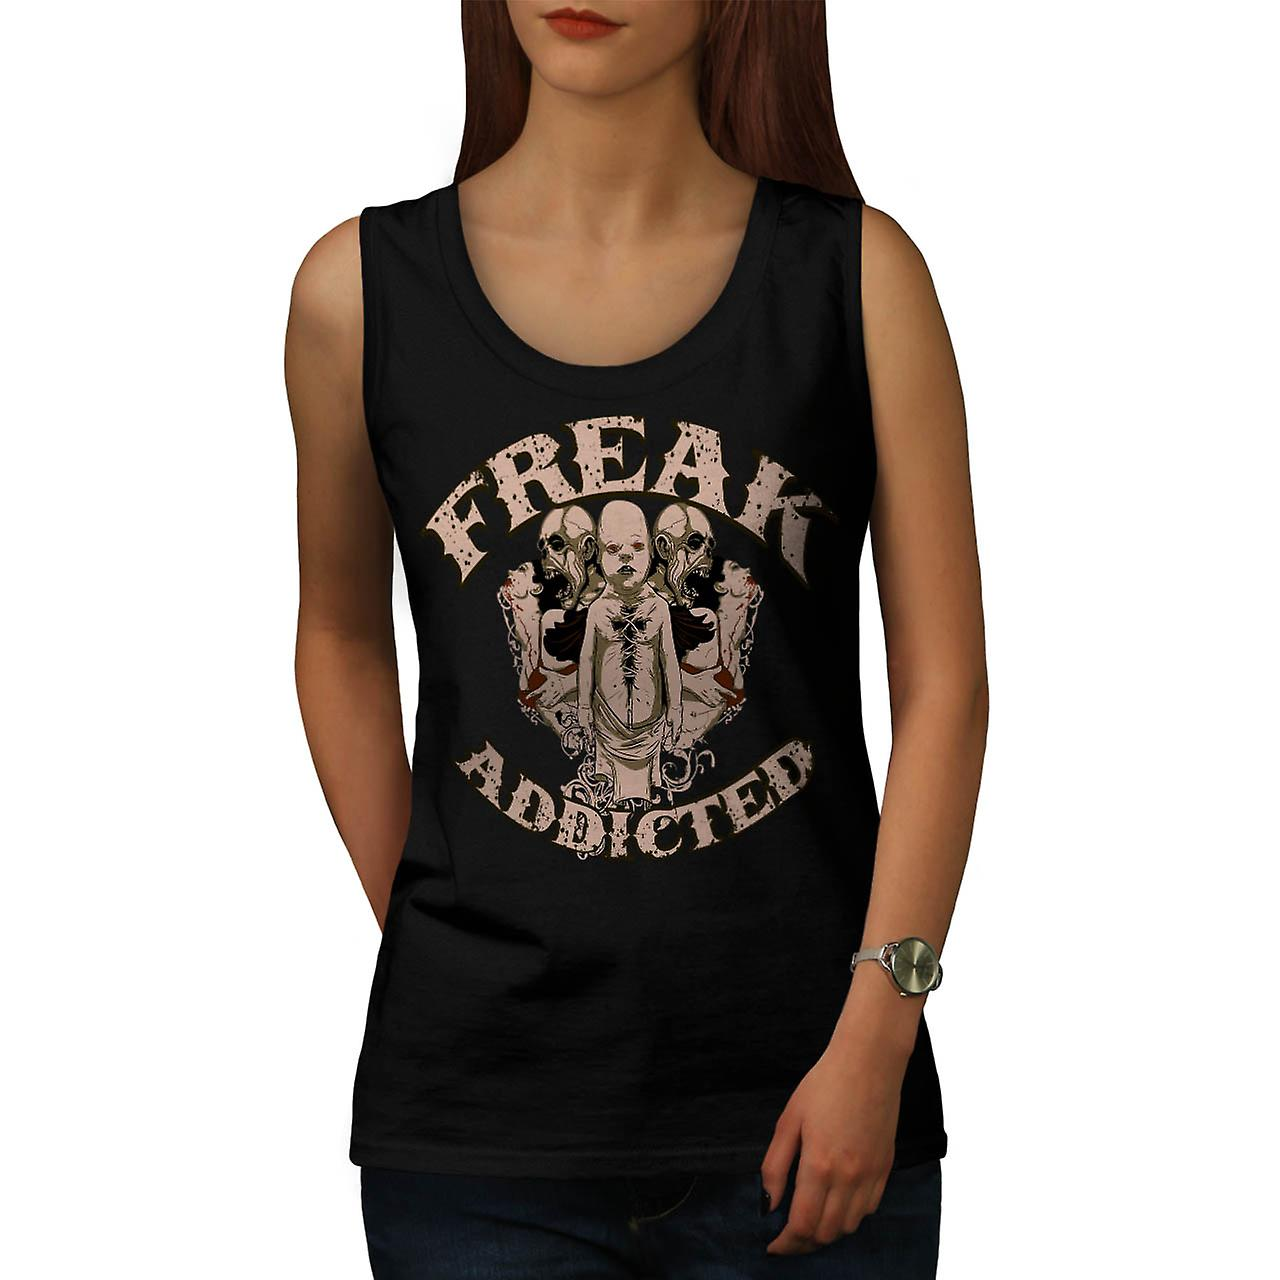 Freak sterben Addict Baby Ghost Kids Frauen Tank-Top schwarz | Wellcoda